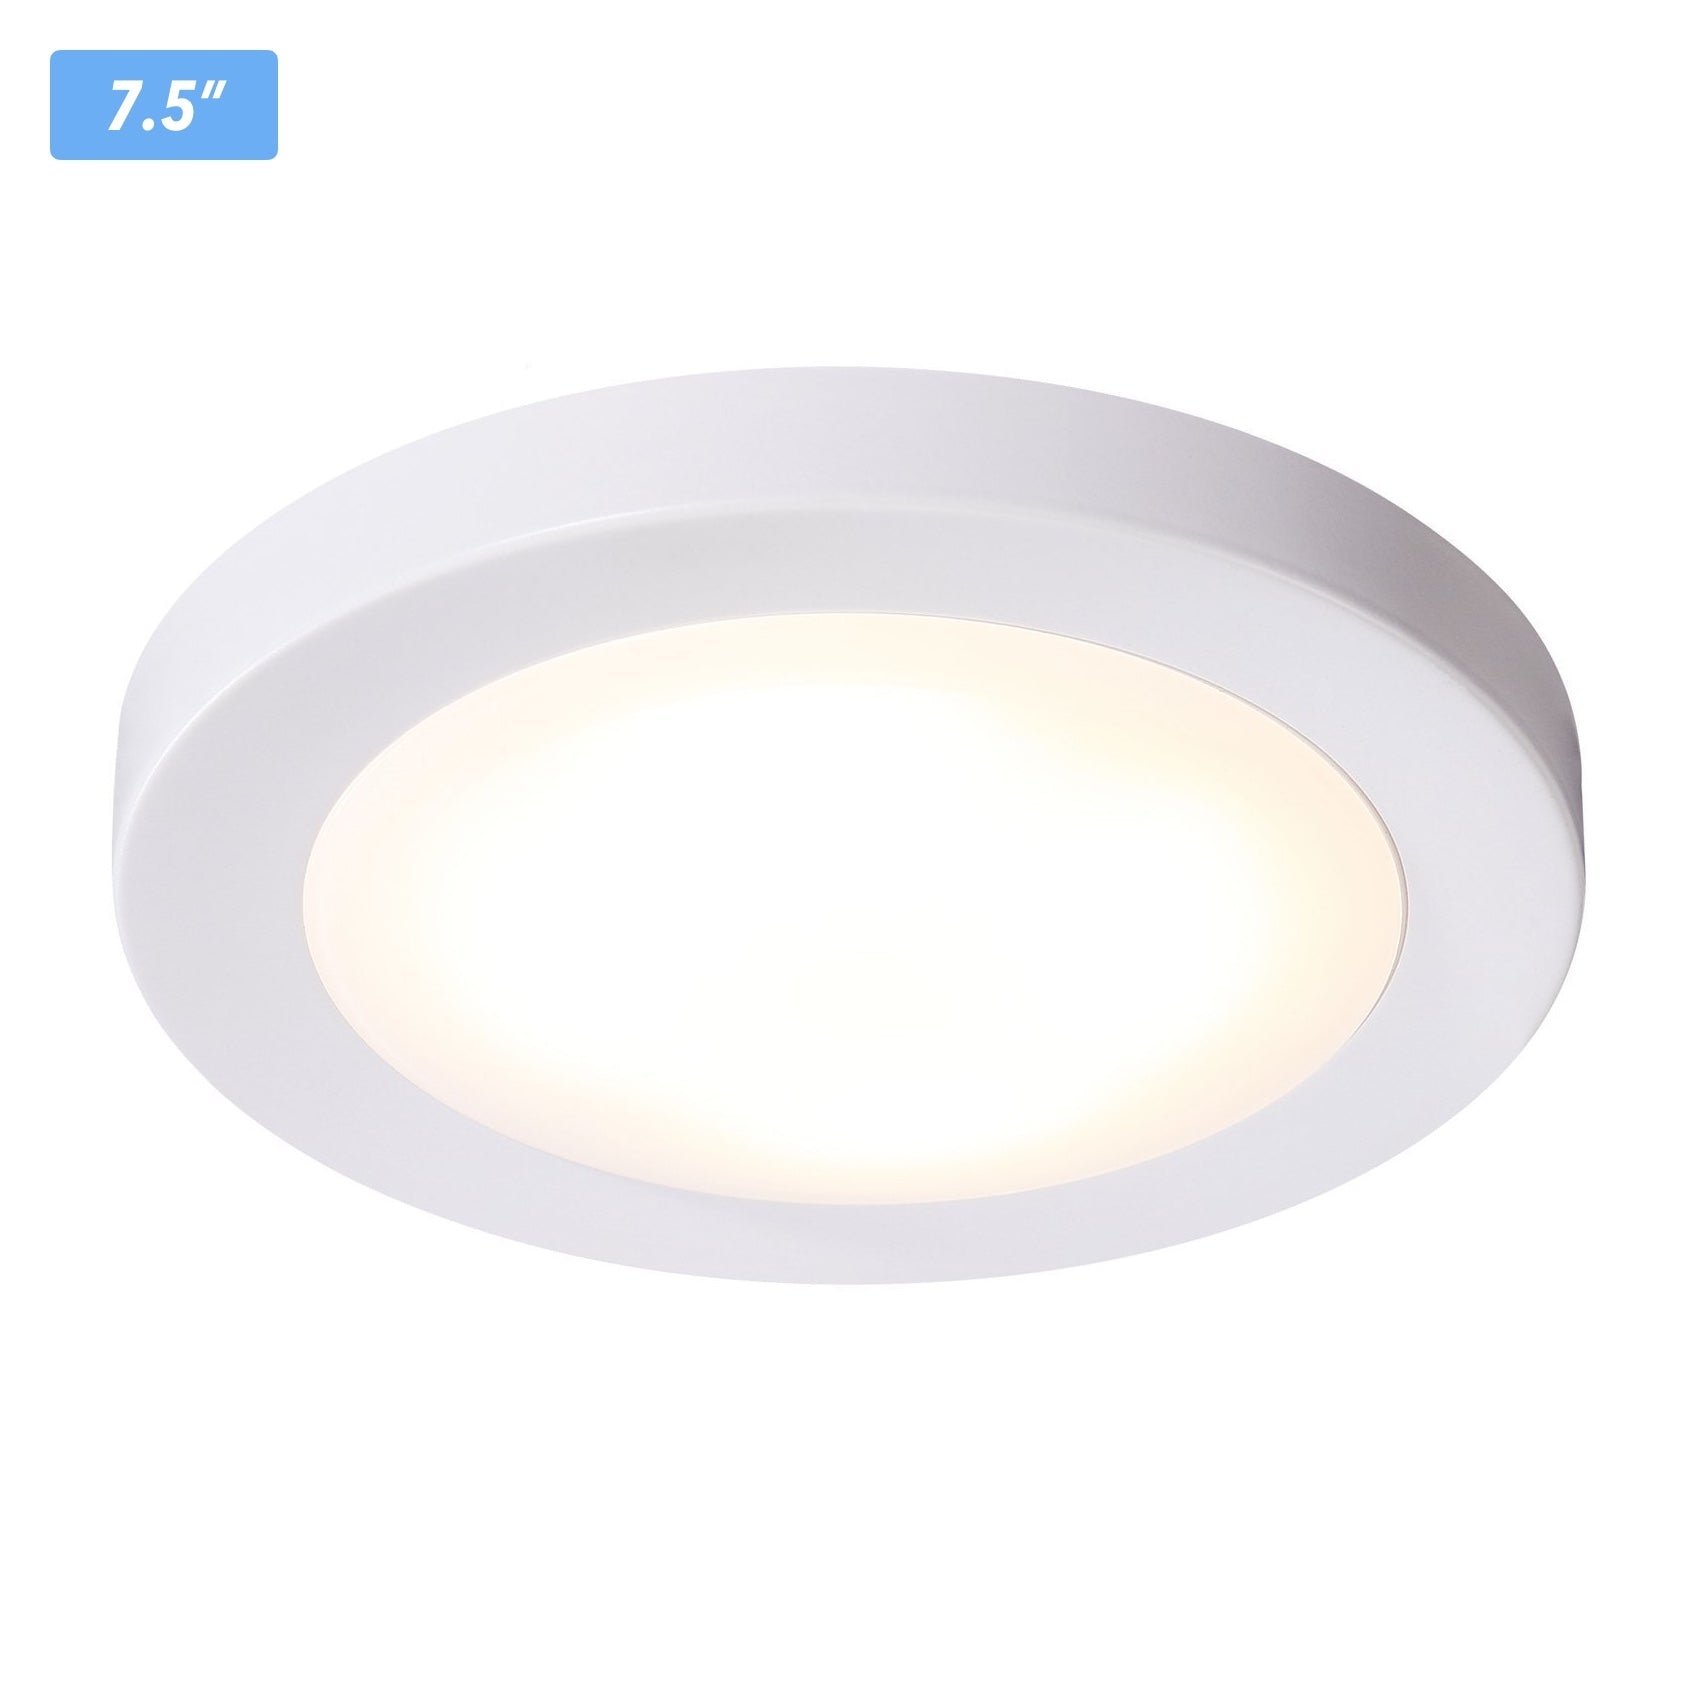 newest 47deb e838b Flush Mount Ceiling Light, 7.5-inch, Dimmable LED, White Finish, Wet  Location, 120V/12W/840lm